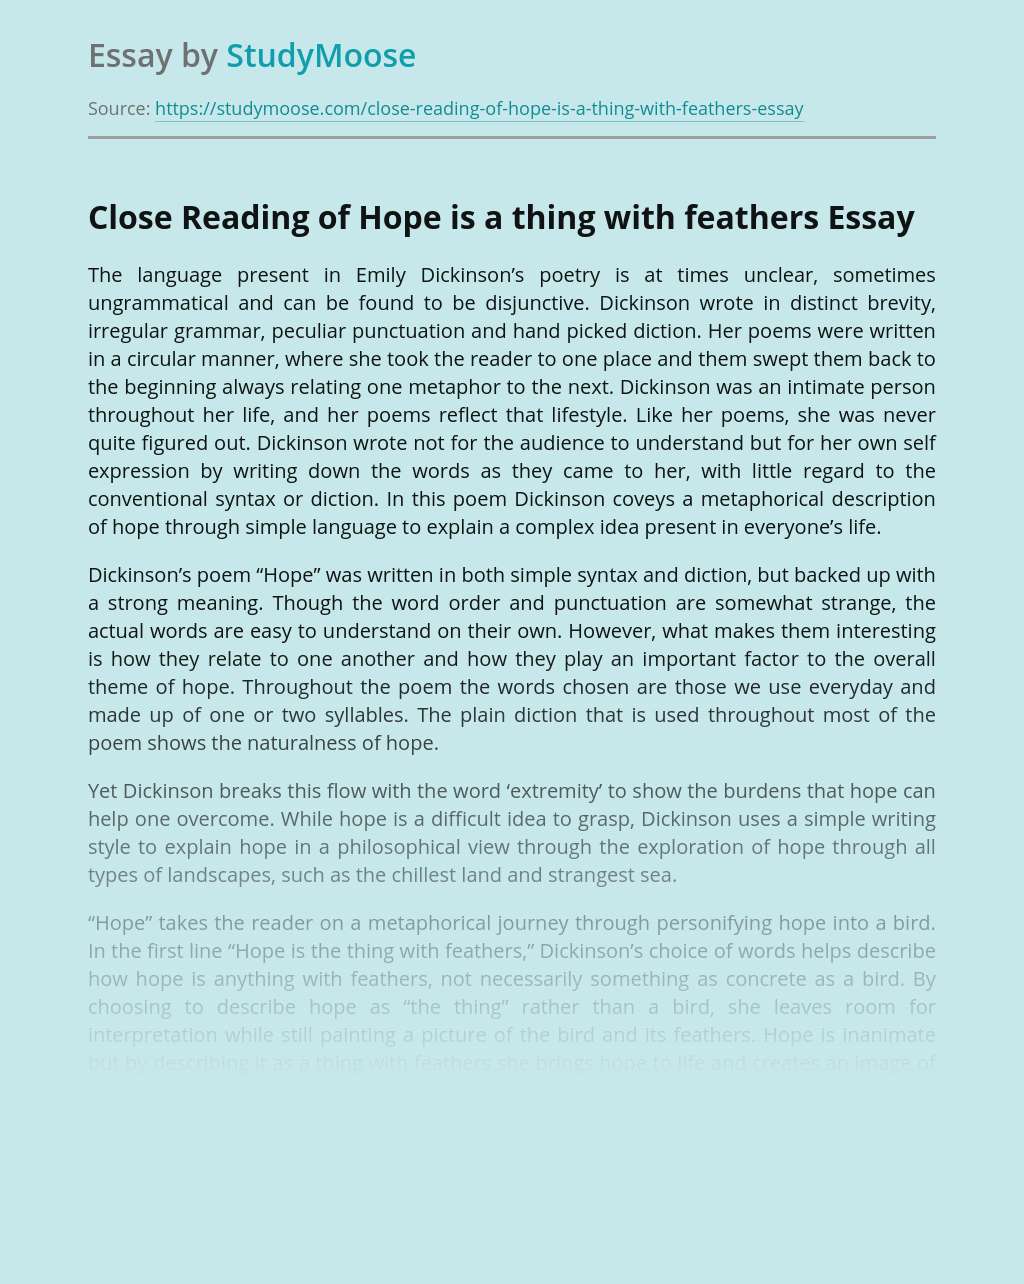 Close Reading of Hope is a thing with feathers